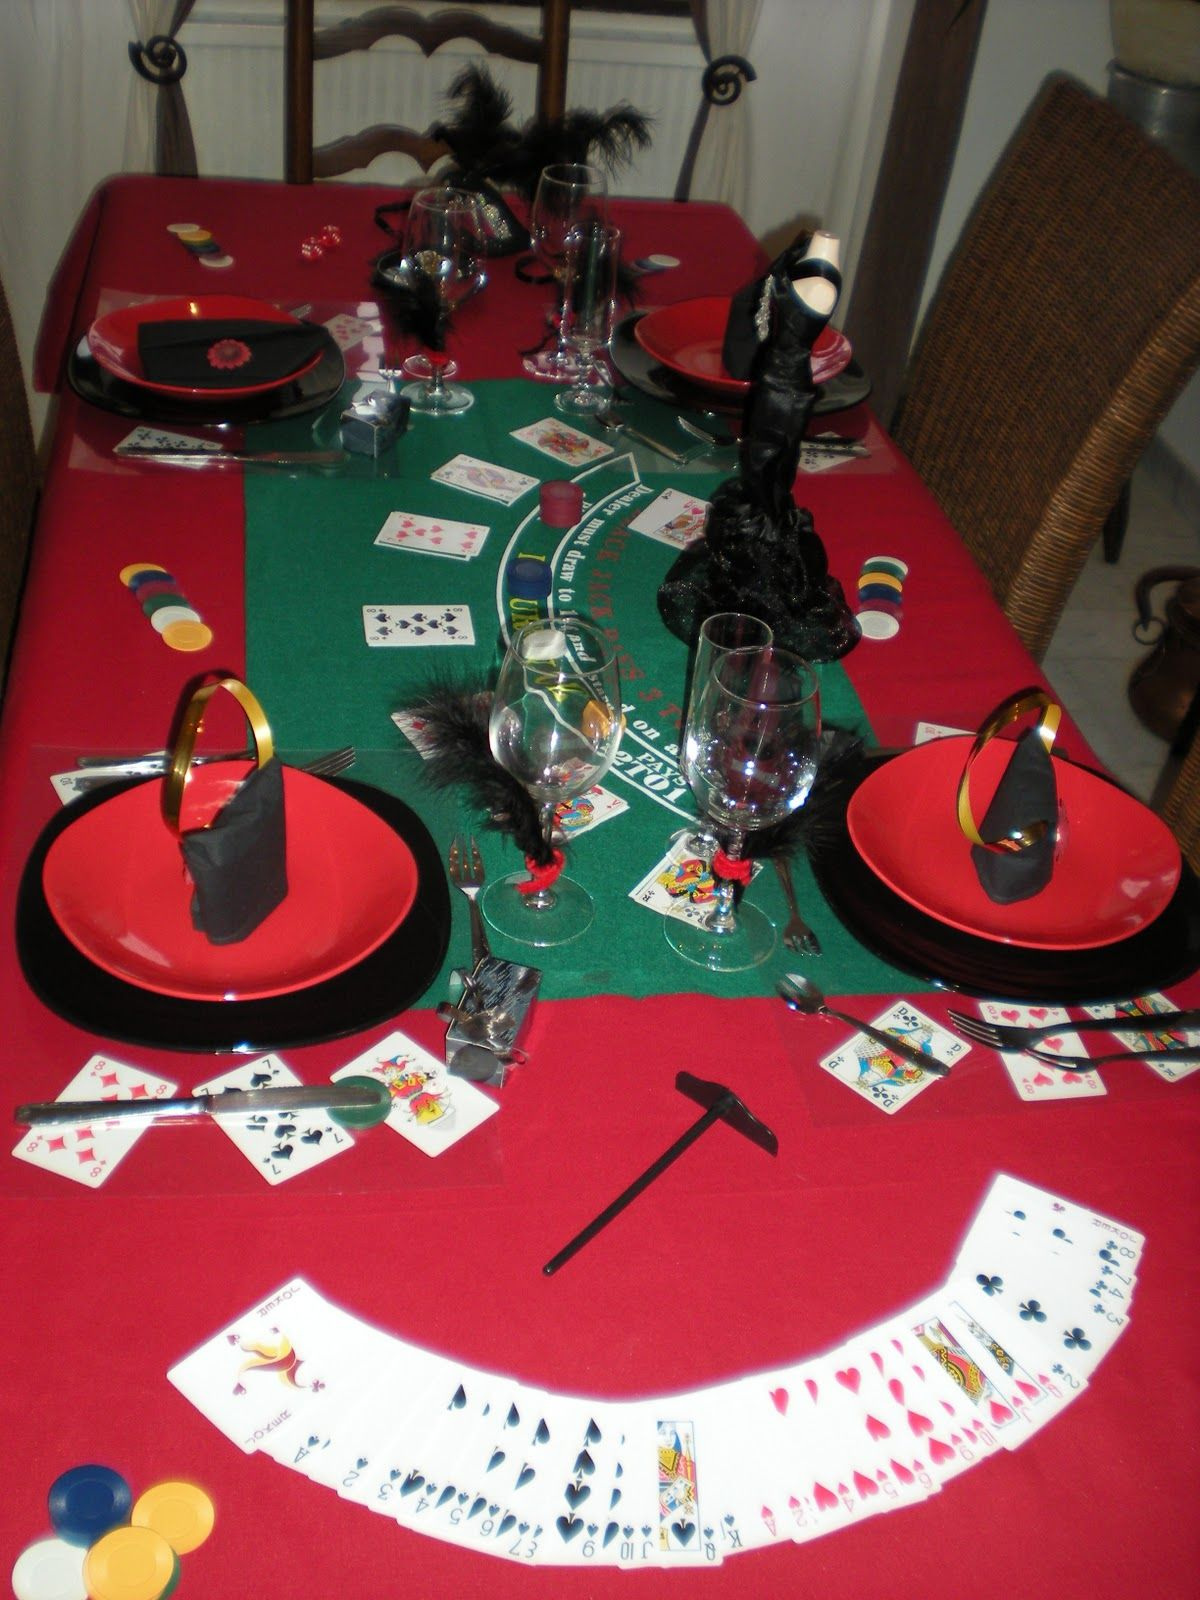 Decoration de noel geant casino bugs bunny blackjack